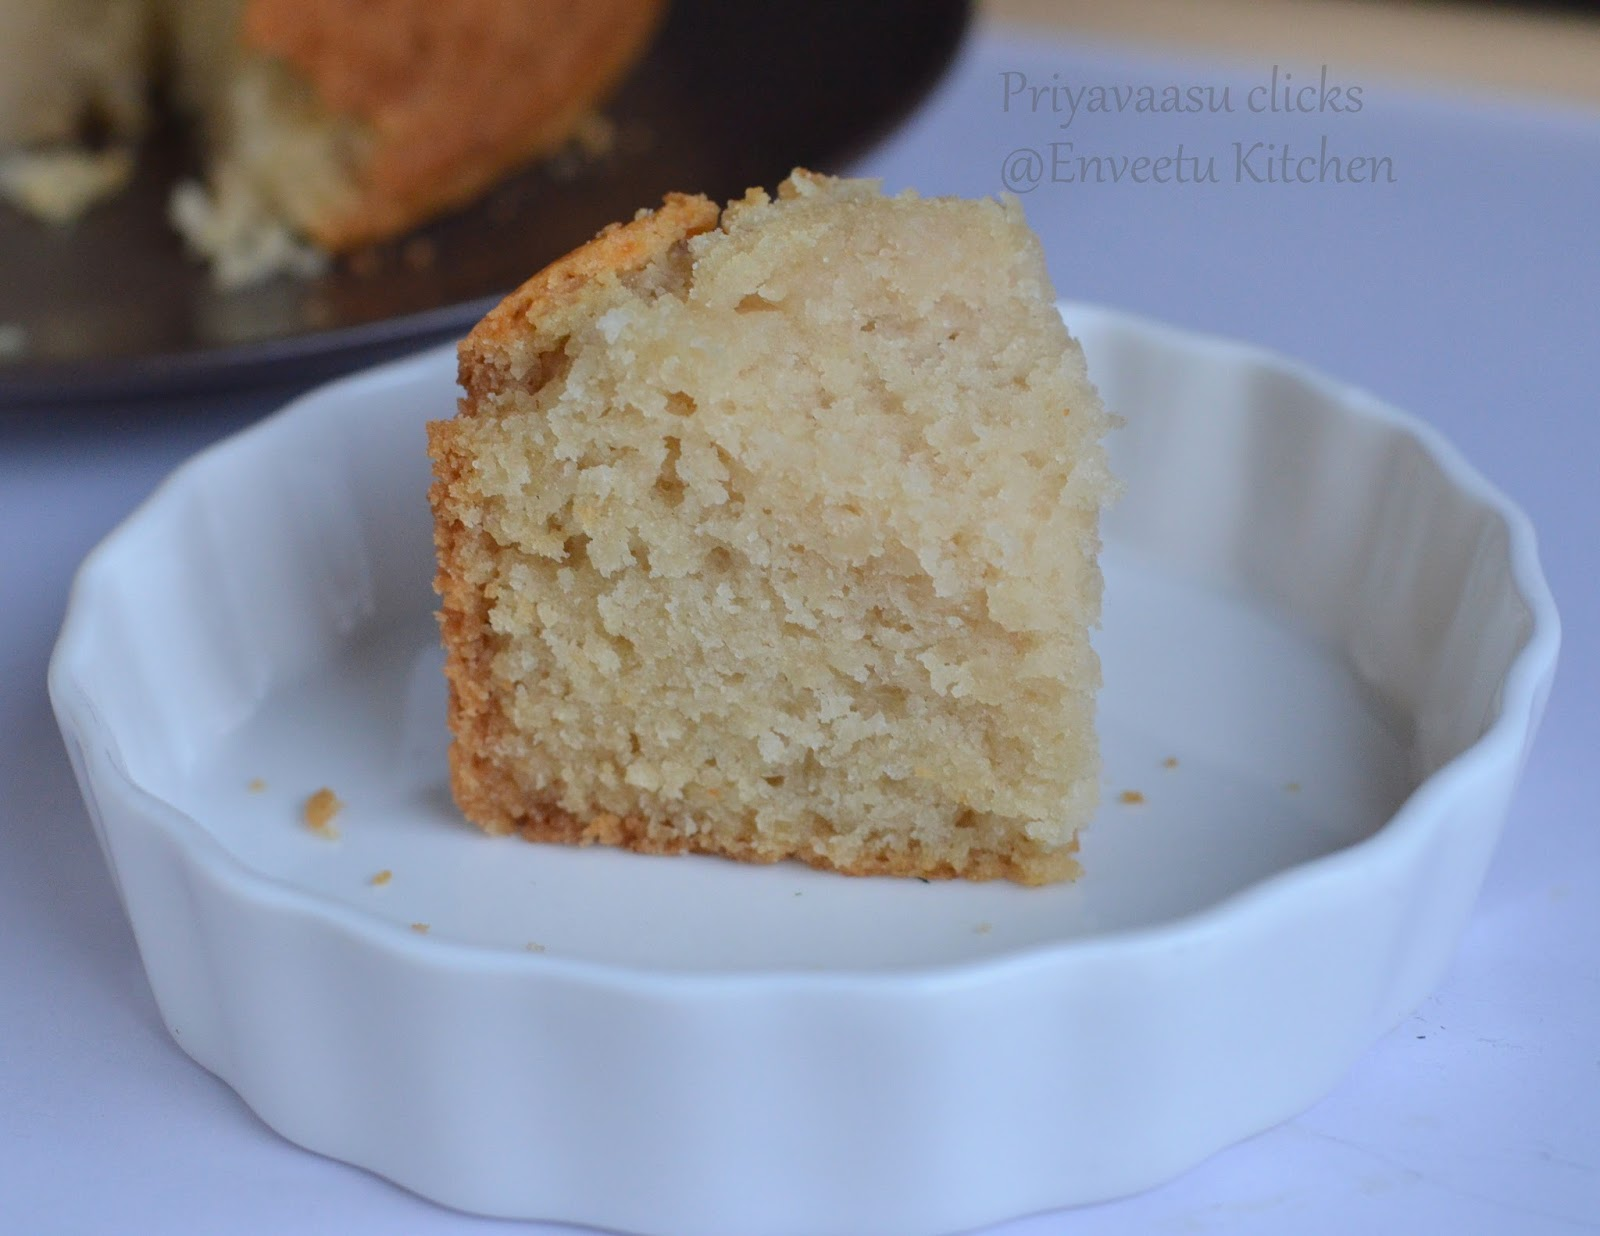 Eggless Buttermilk Sponge Cake Recipes